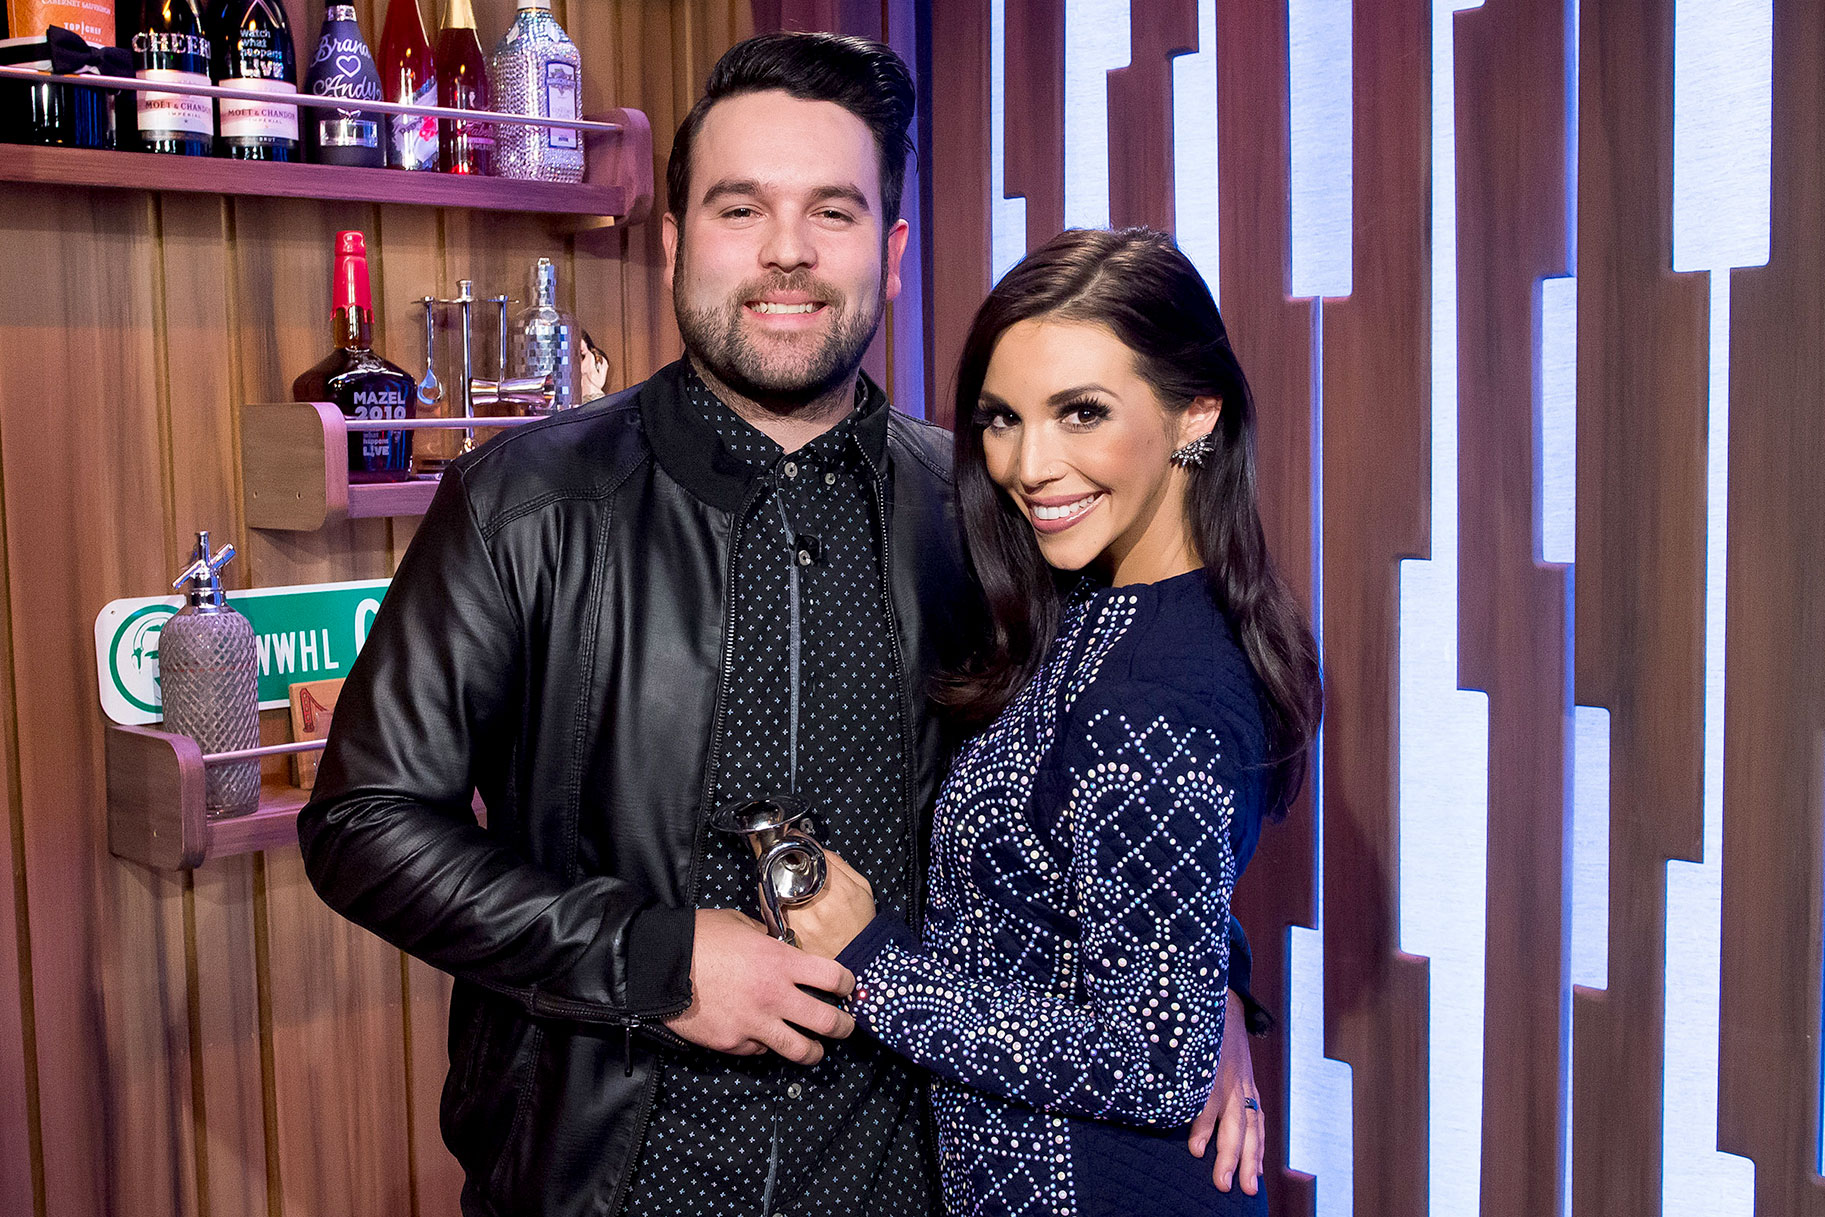 Scheana Mike Shay New Boyfriend